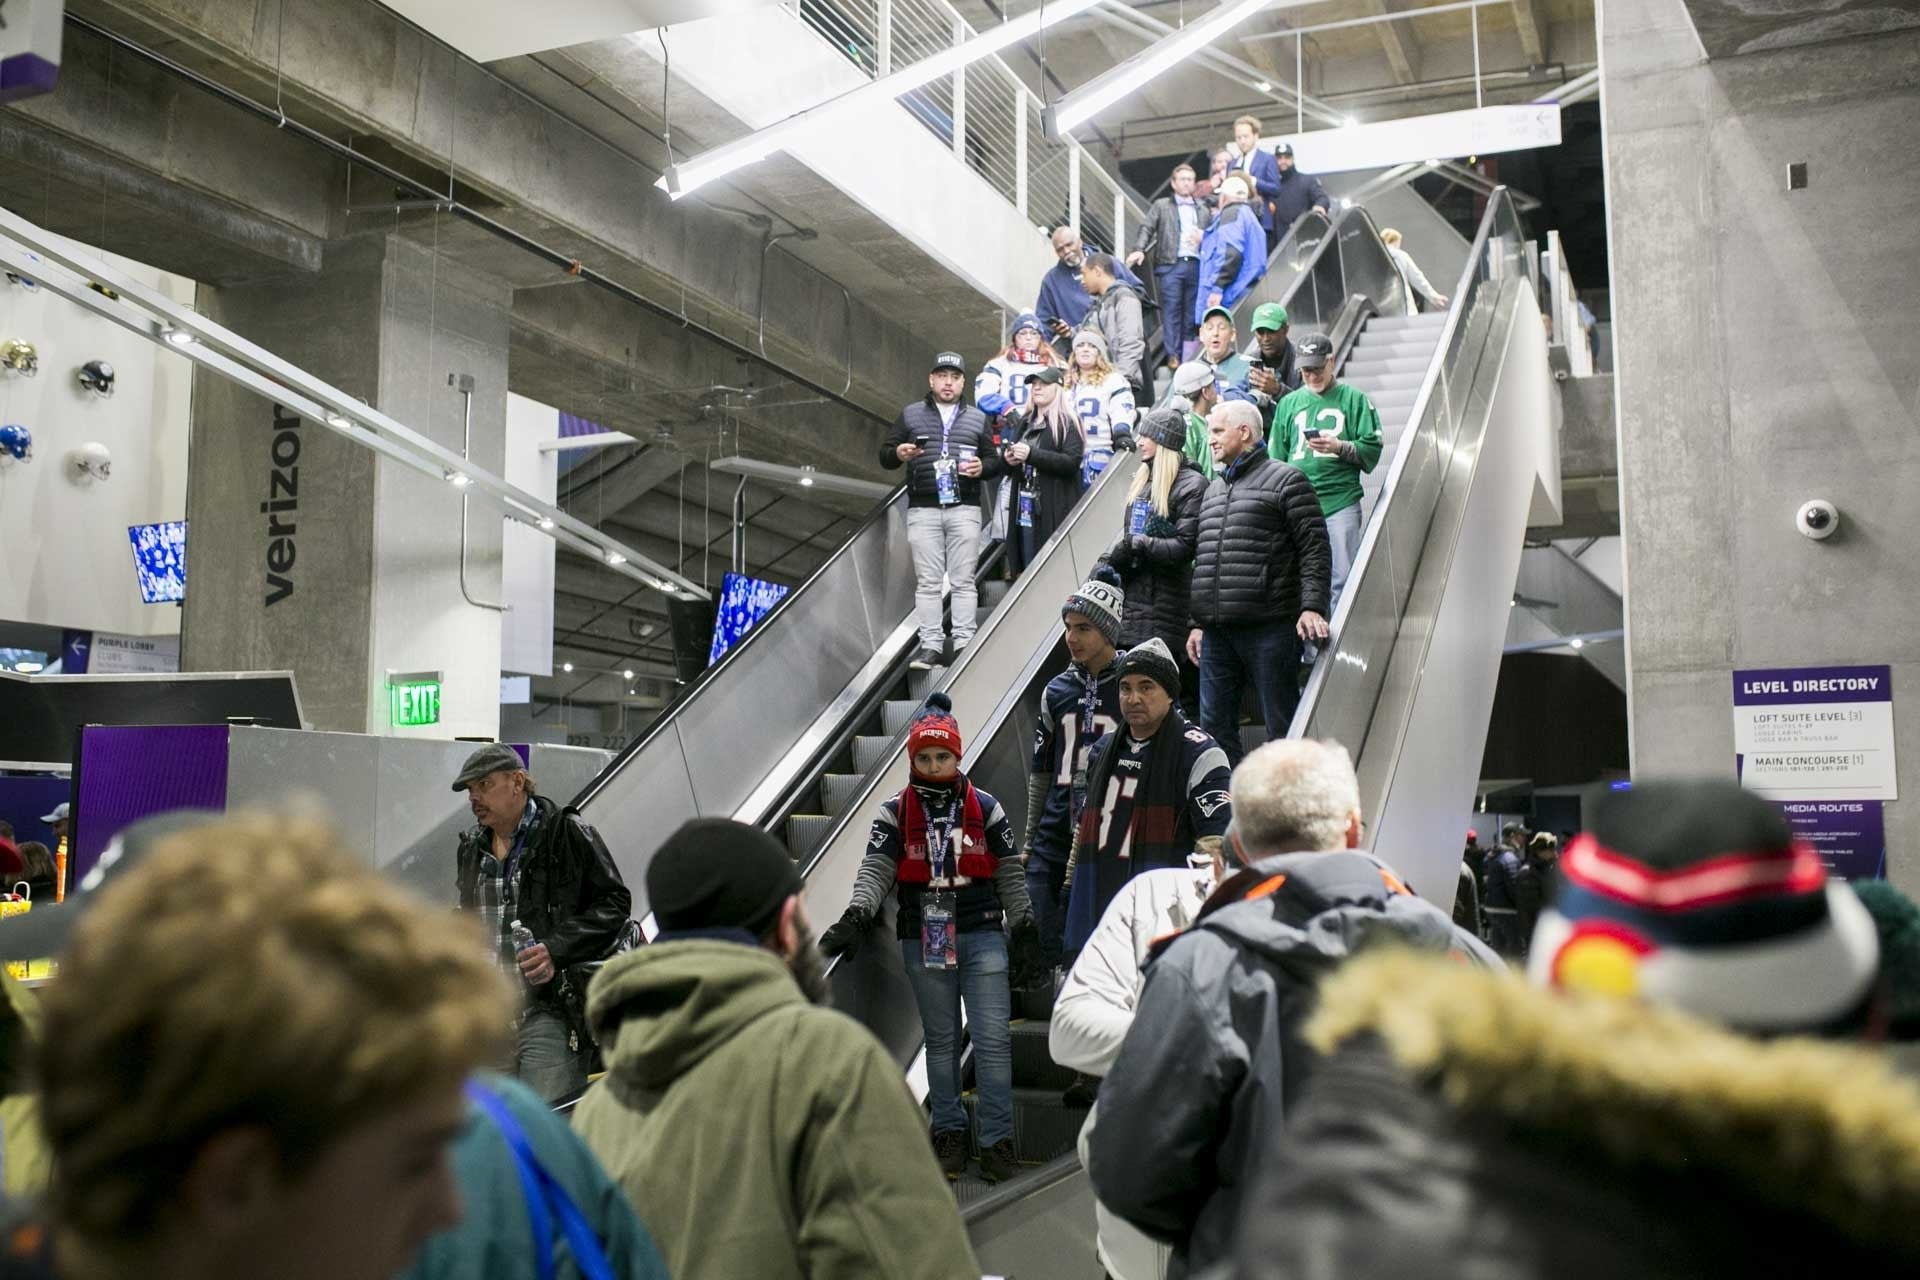 New England and Philadelphia fans descend escalators